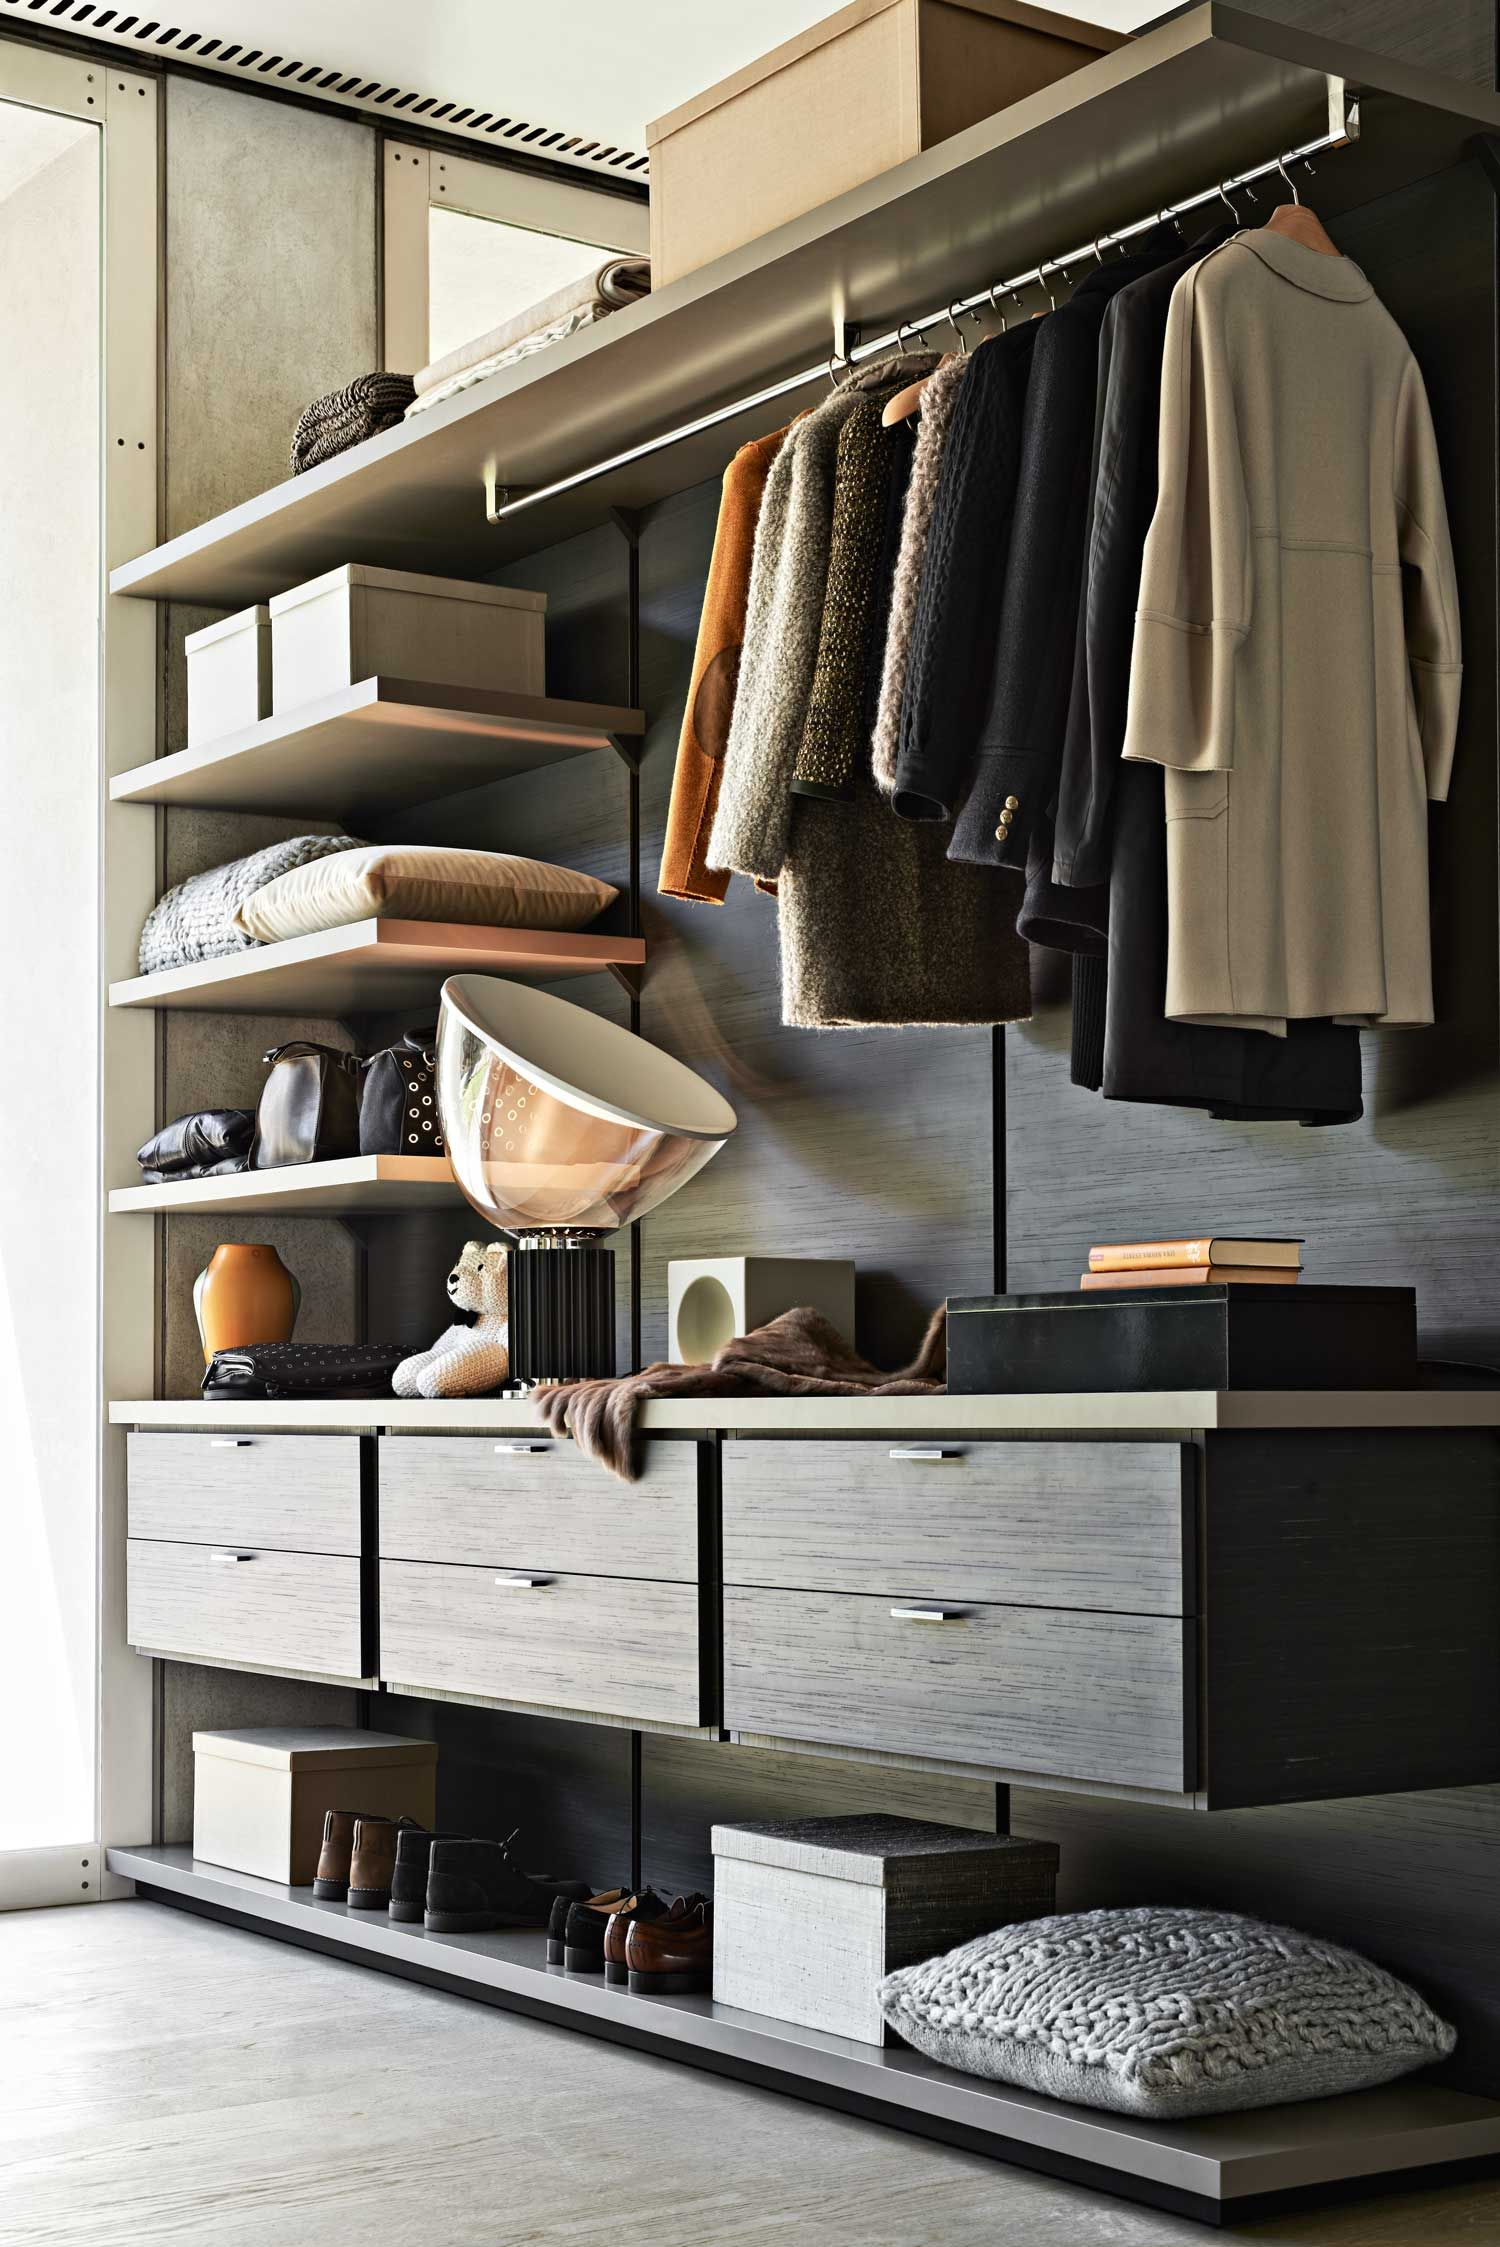 pax wardrobe and closet best clothes systems architects ikea posts to according designers interior system favorite white